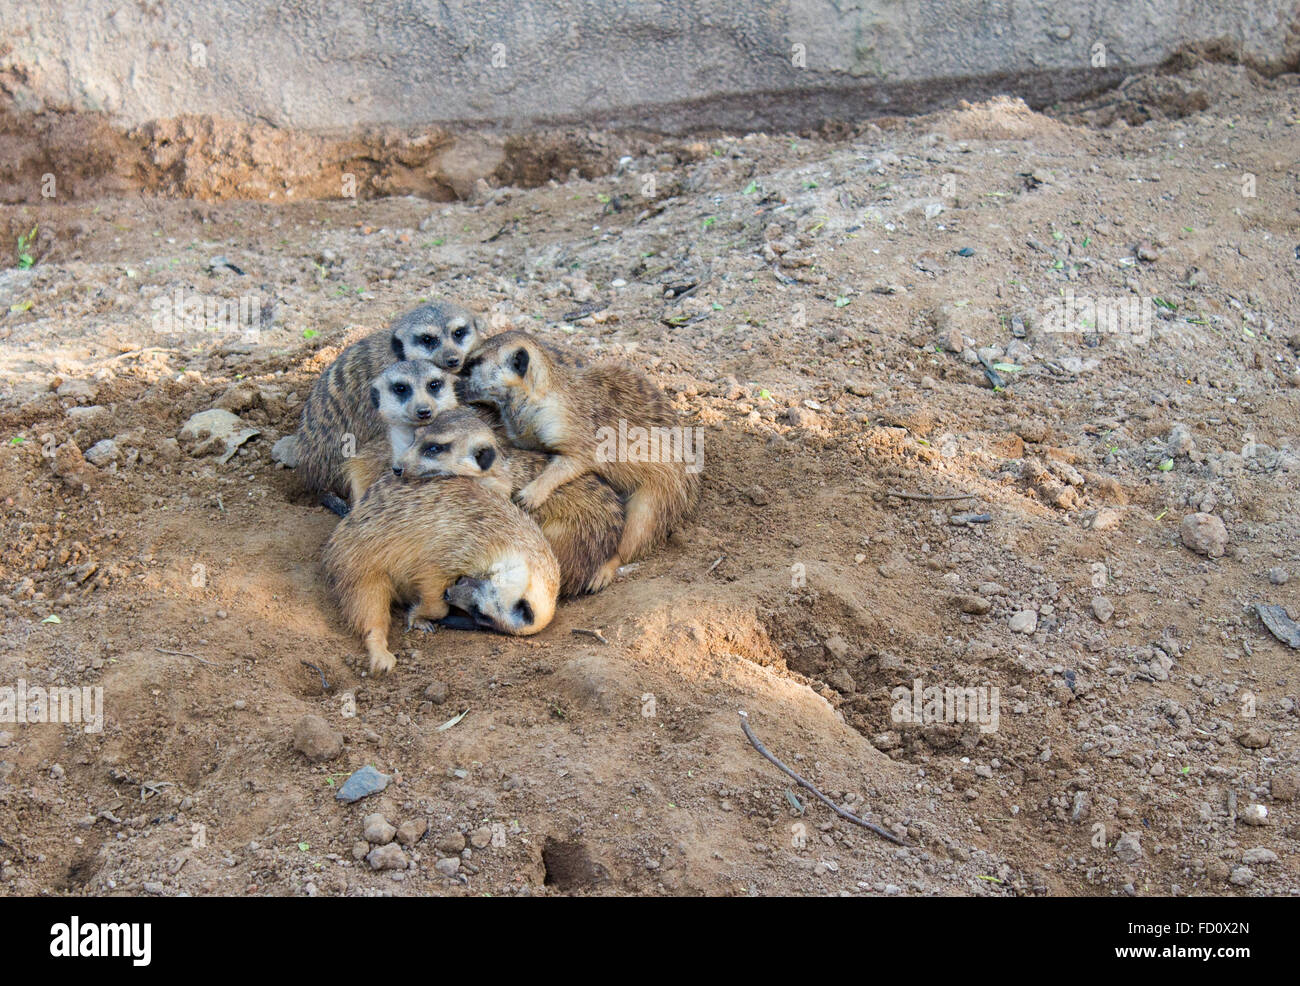 Meerkat grouped at the zoo - Stock Image